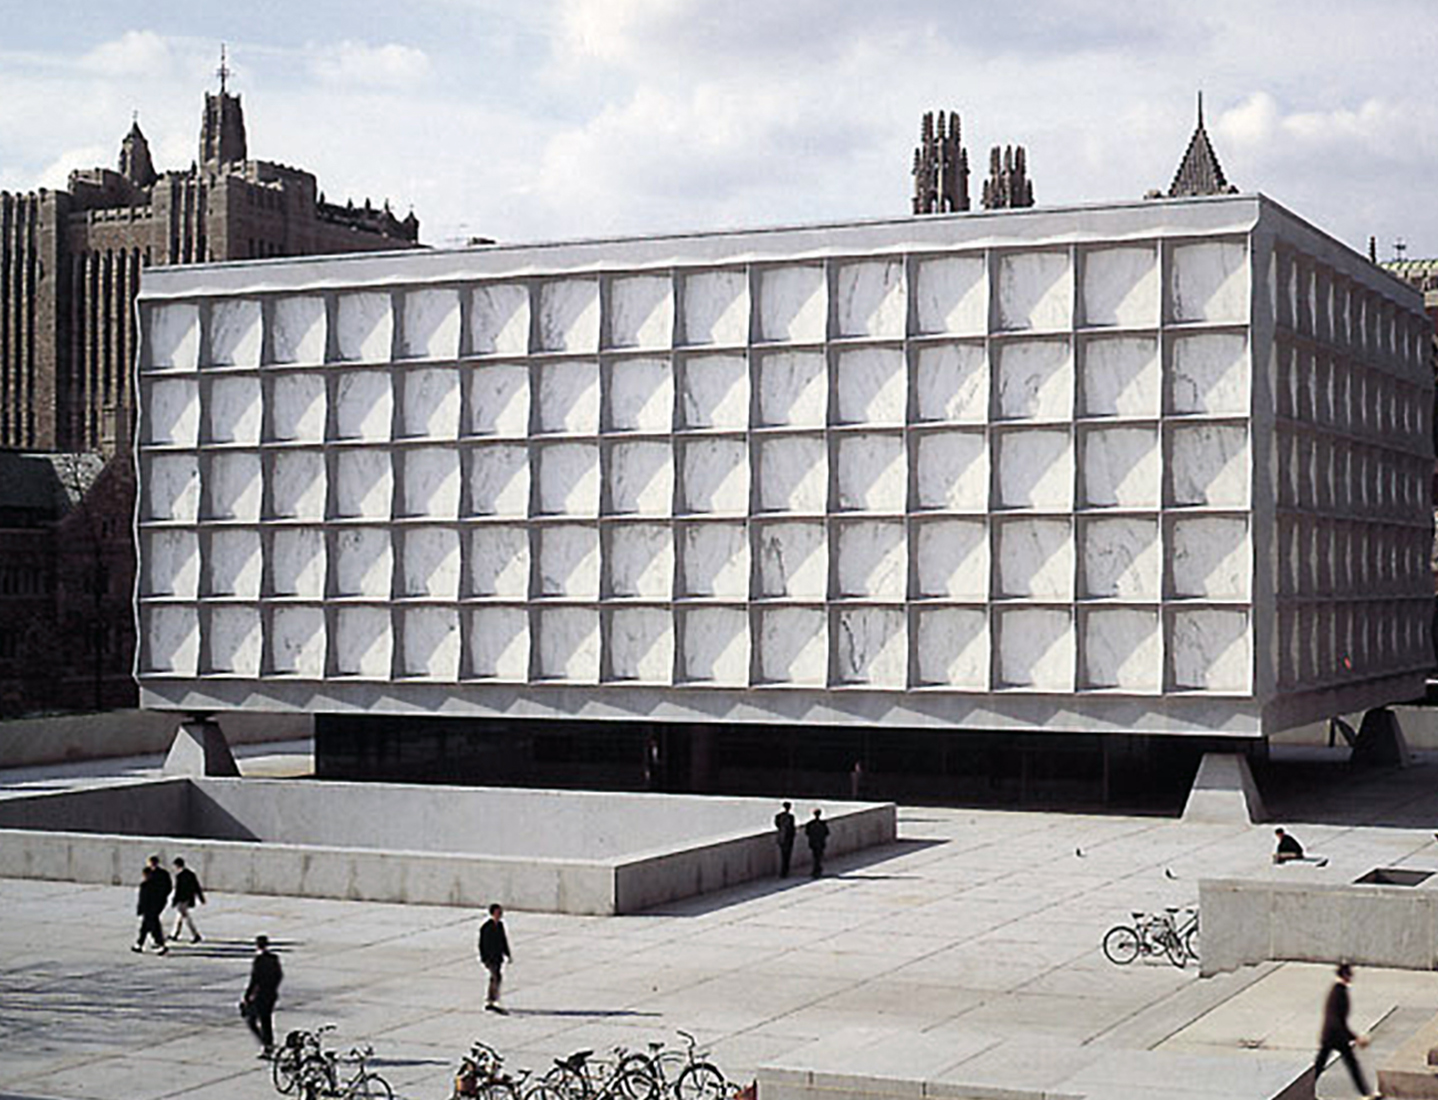 Yale University, Beinecke Rare Book and Manuscript Library